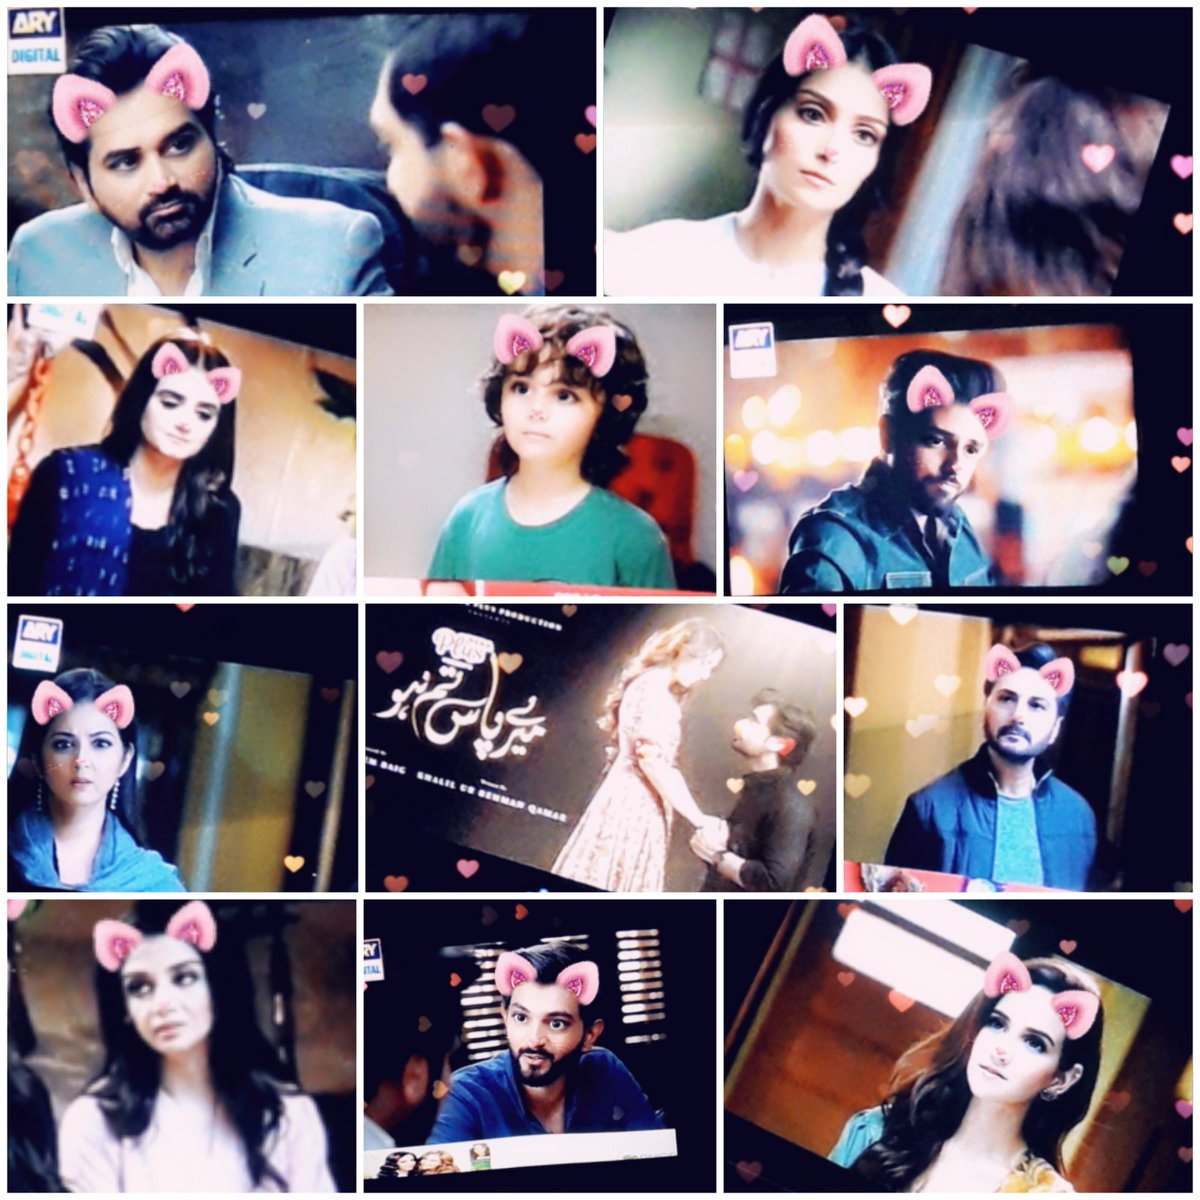 All are looking cute in my collage AchaSorry . Love this drama Different from other stories..Mind Blowing Last EpisodeHeart Breaking#MeryPaasTumHo  @iamhumayunsaeed  @adnanactor  #Rumi(Shees)#Ayeza_Khan #Hira_Manipic.twitter.com/2fBwHDdt8R